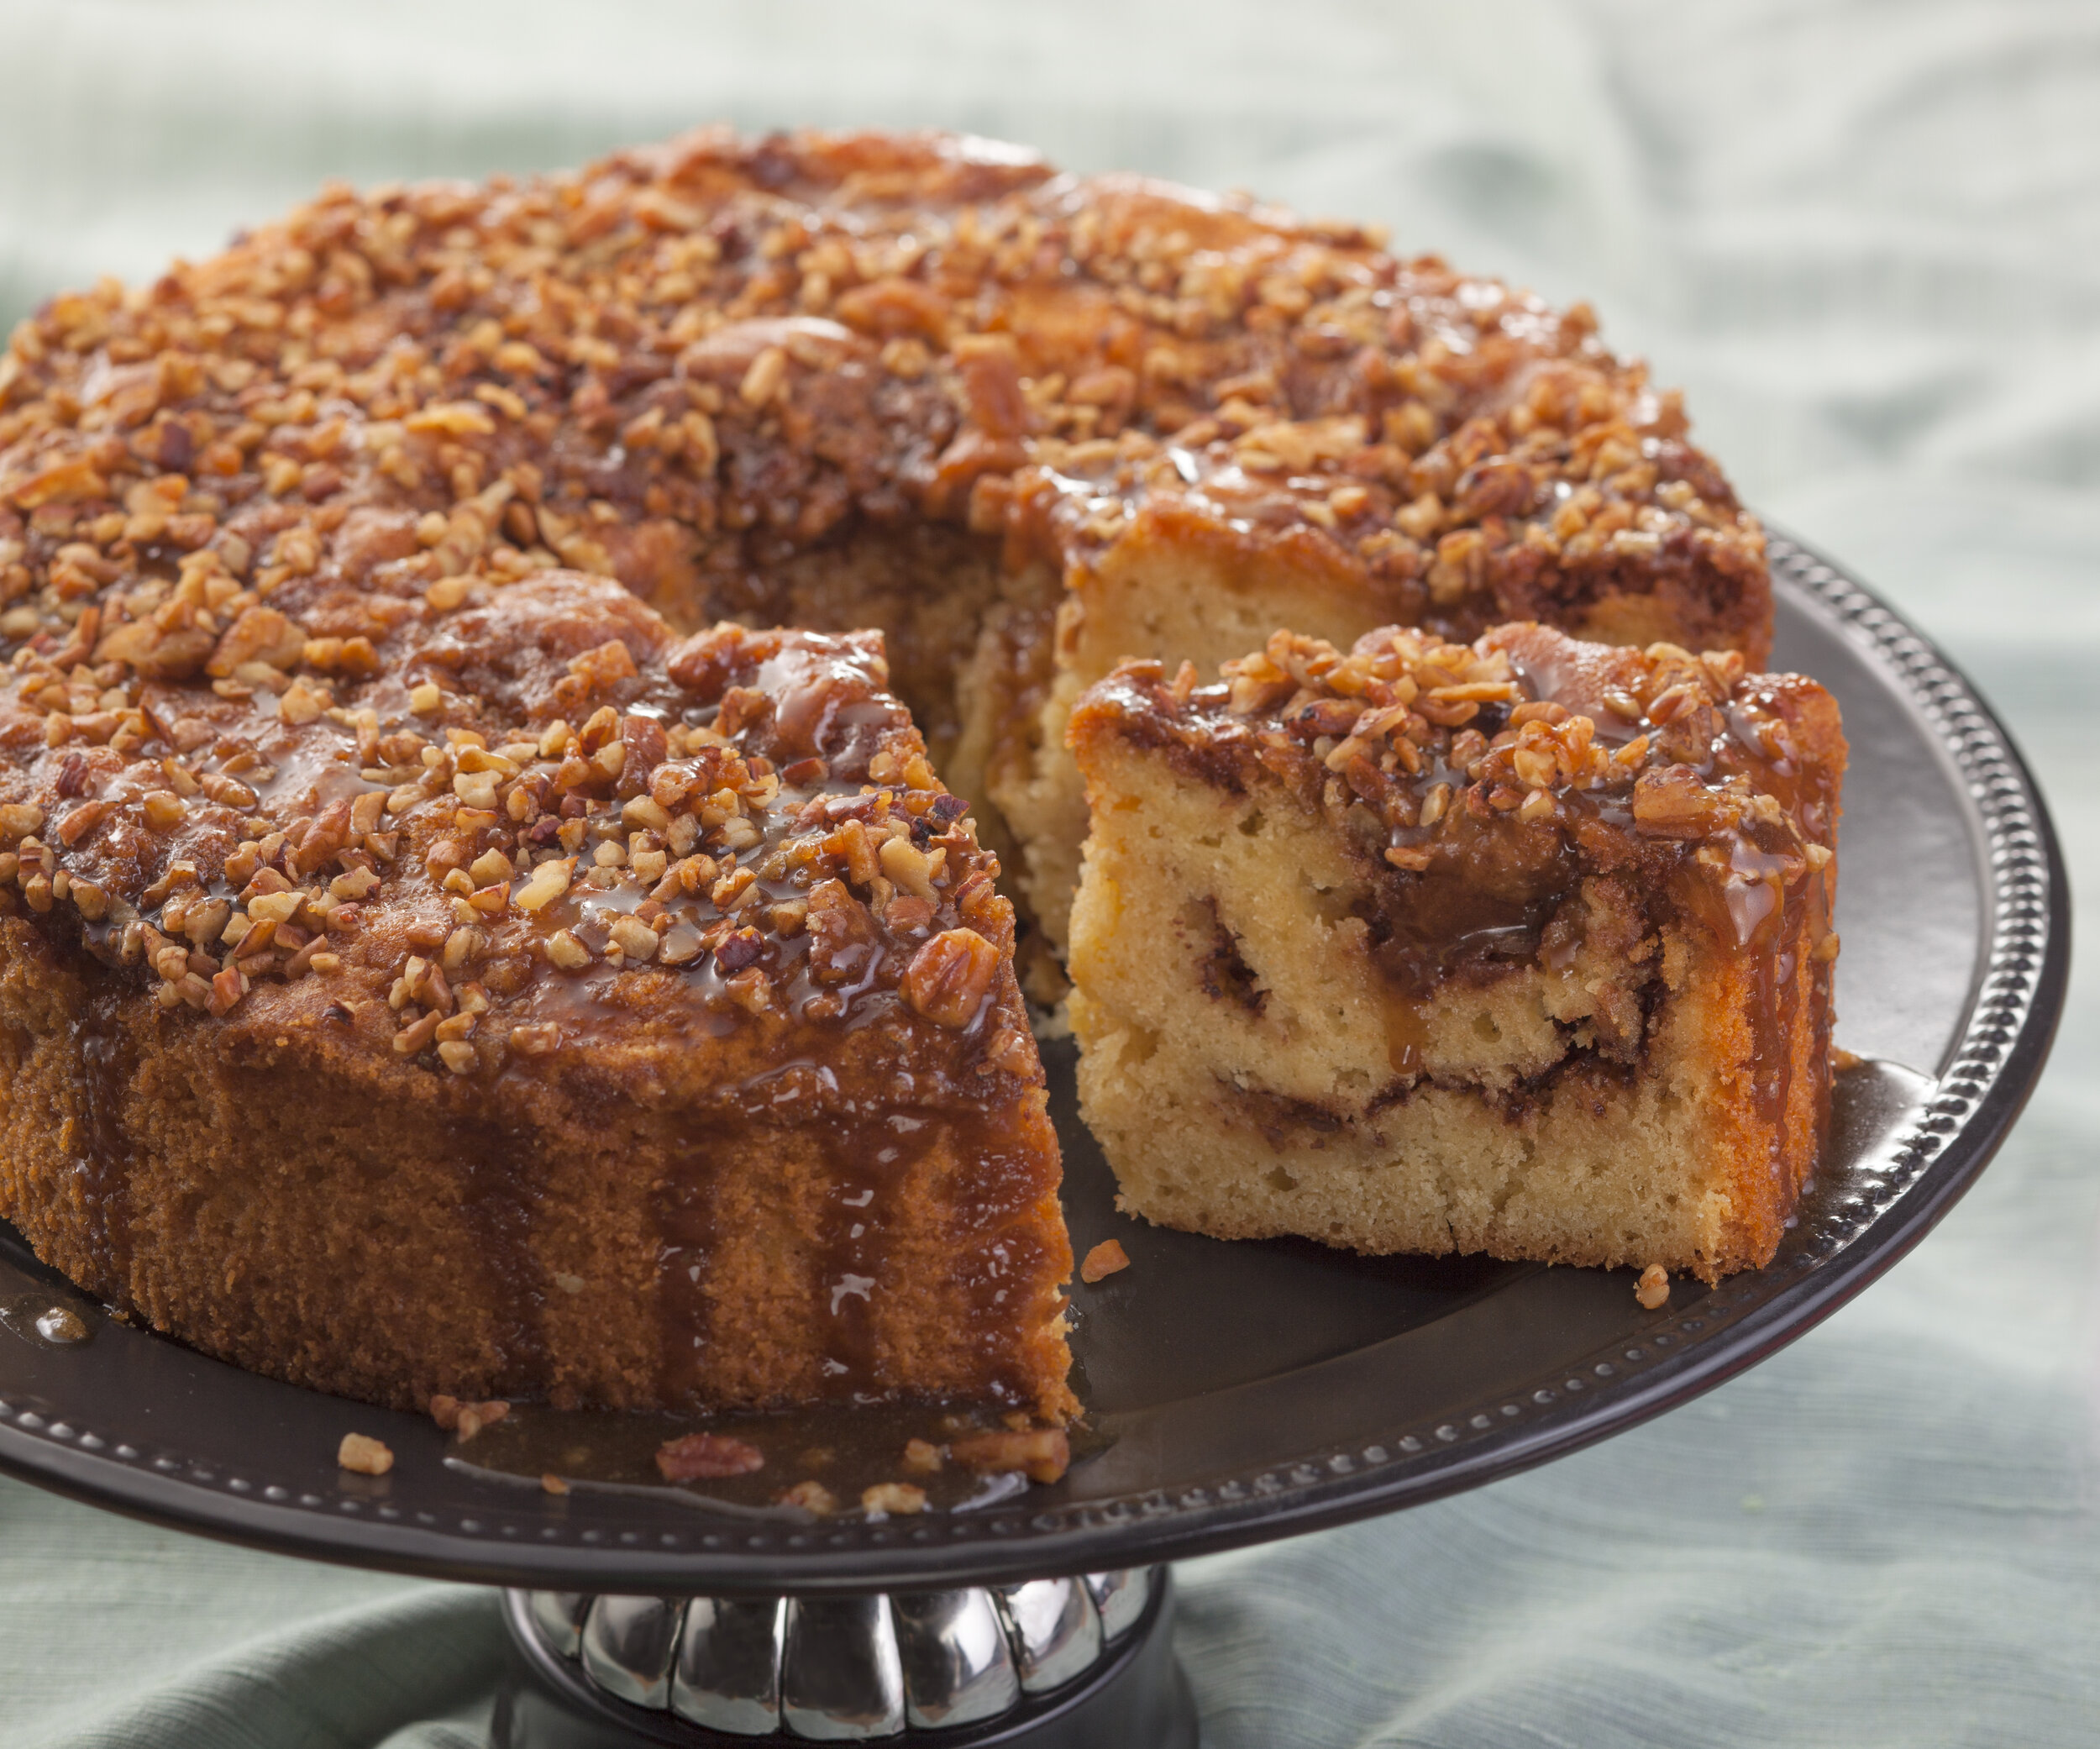 The Most Delicious Old-Fashioned Coffee Cake Recipe